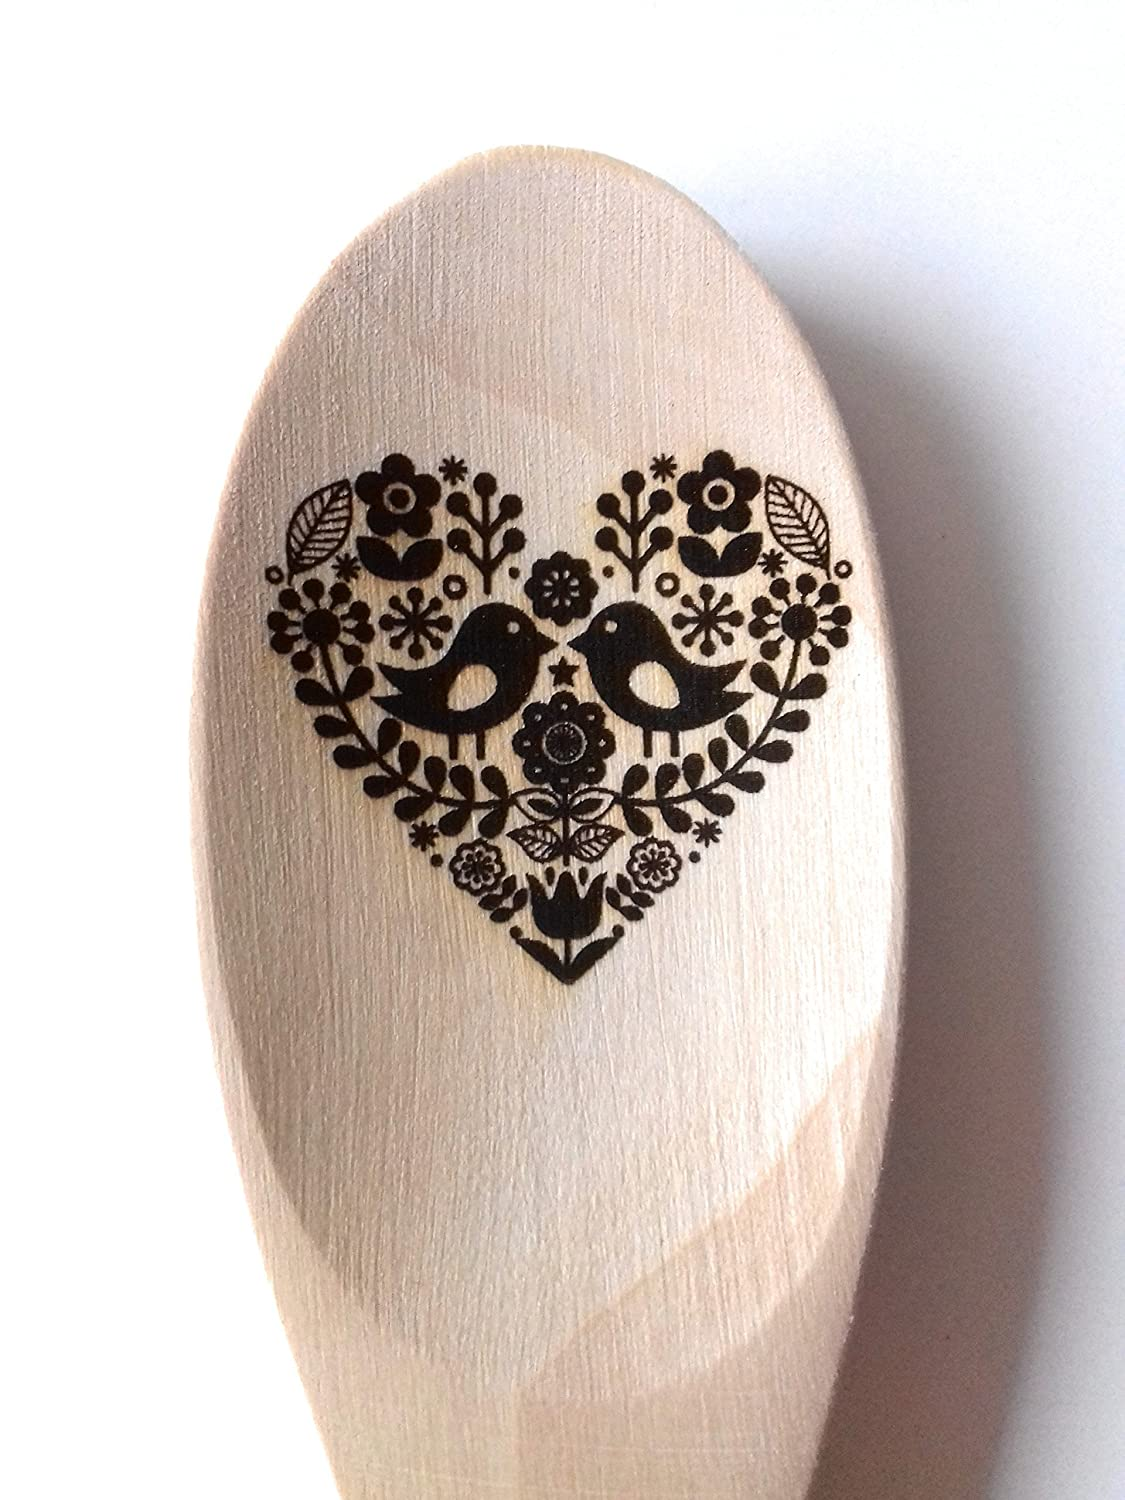 Folk Design Engraved Wooden Spoon